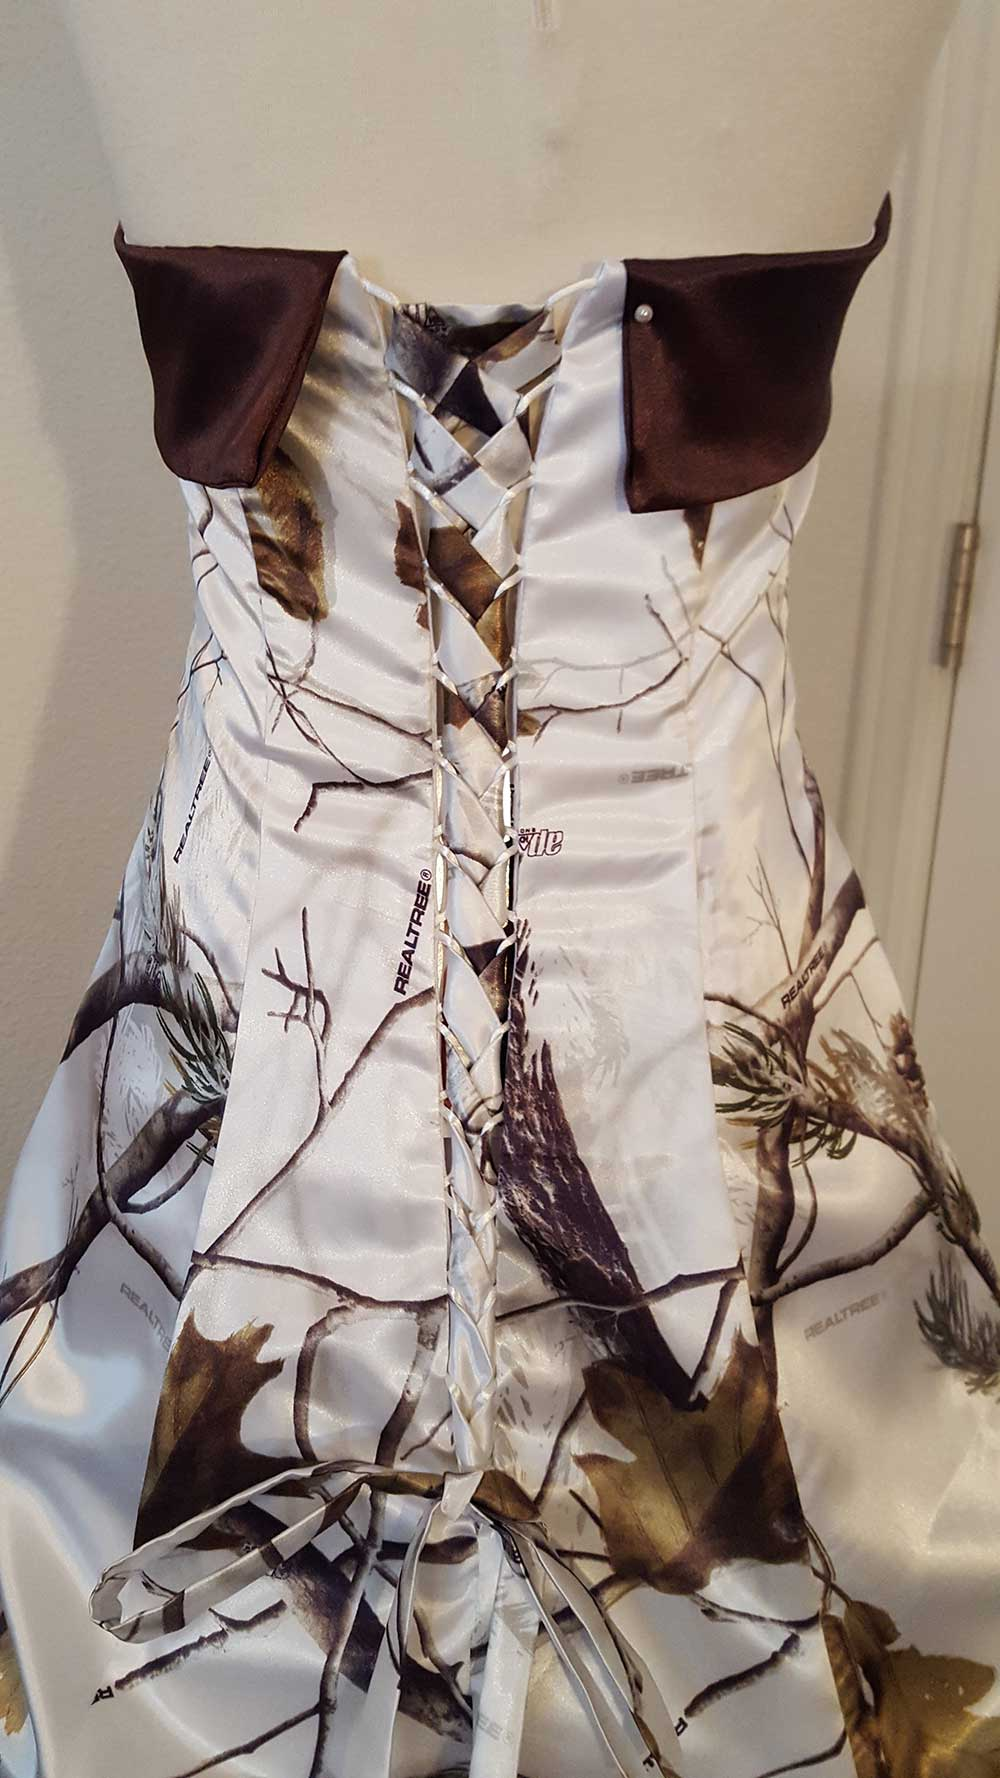 ATOC-32 Courtney Optional Corset Realtree AP Snow Camo Gown (image)